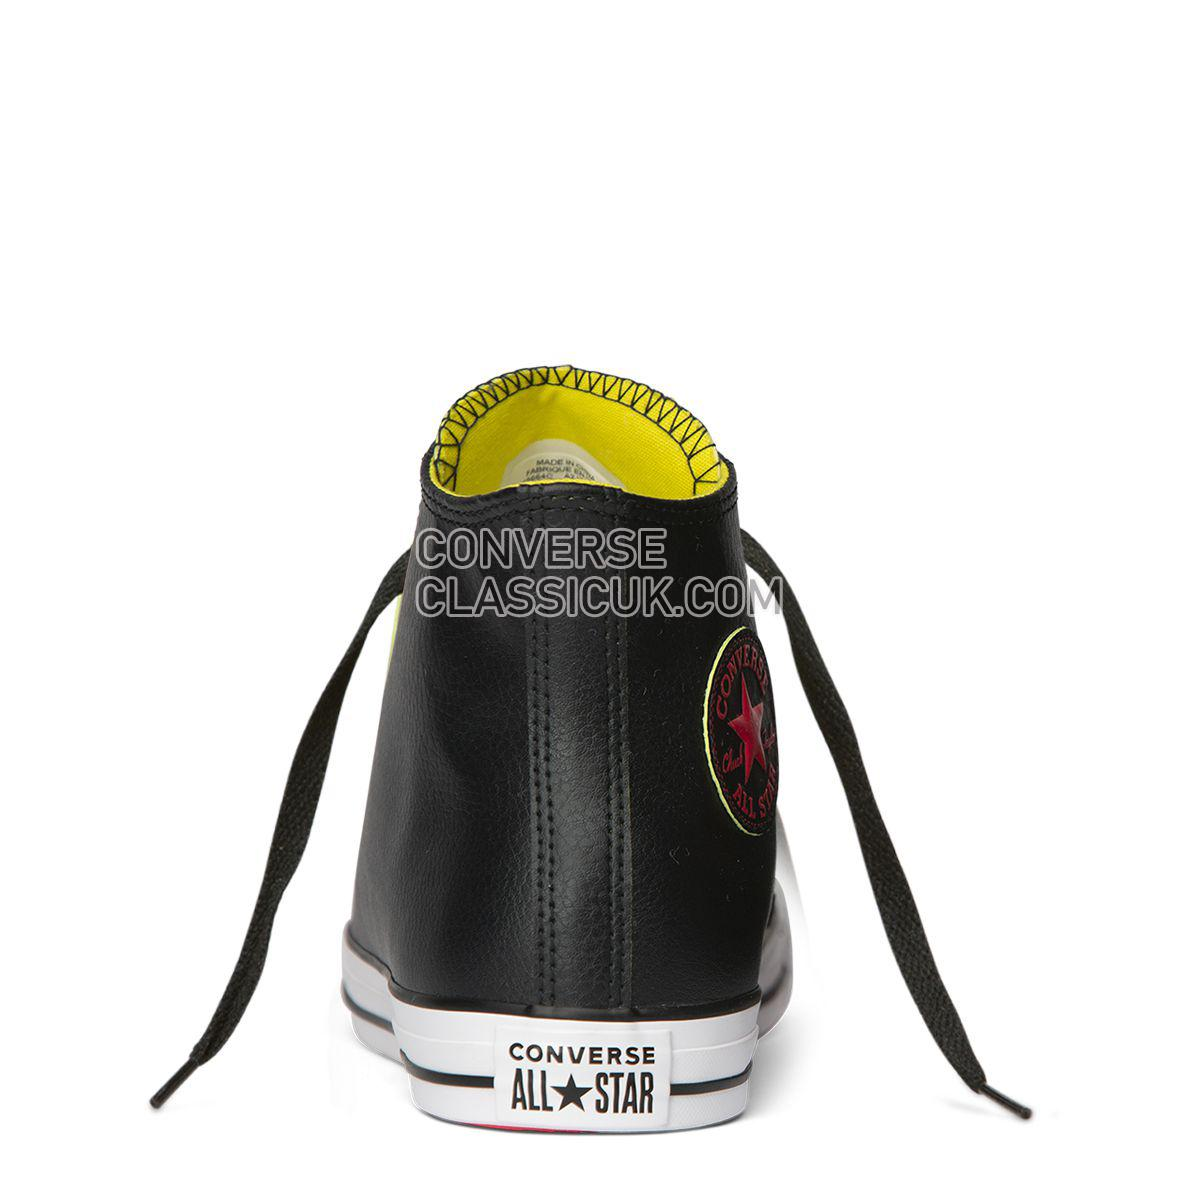 Converse Chuck Taylor All Star SL High Top Black Mens Womens Unisex 165664 Black/Acid Green/White Shoes